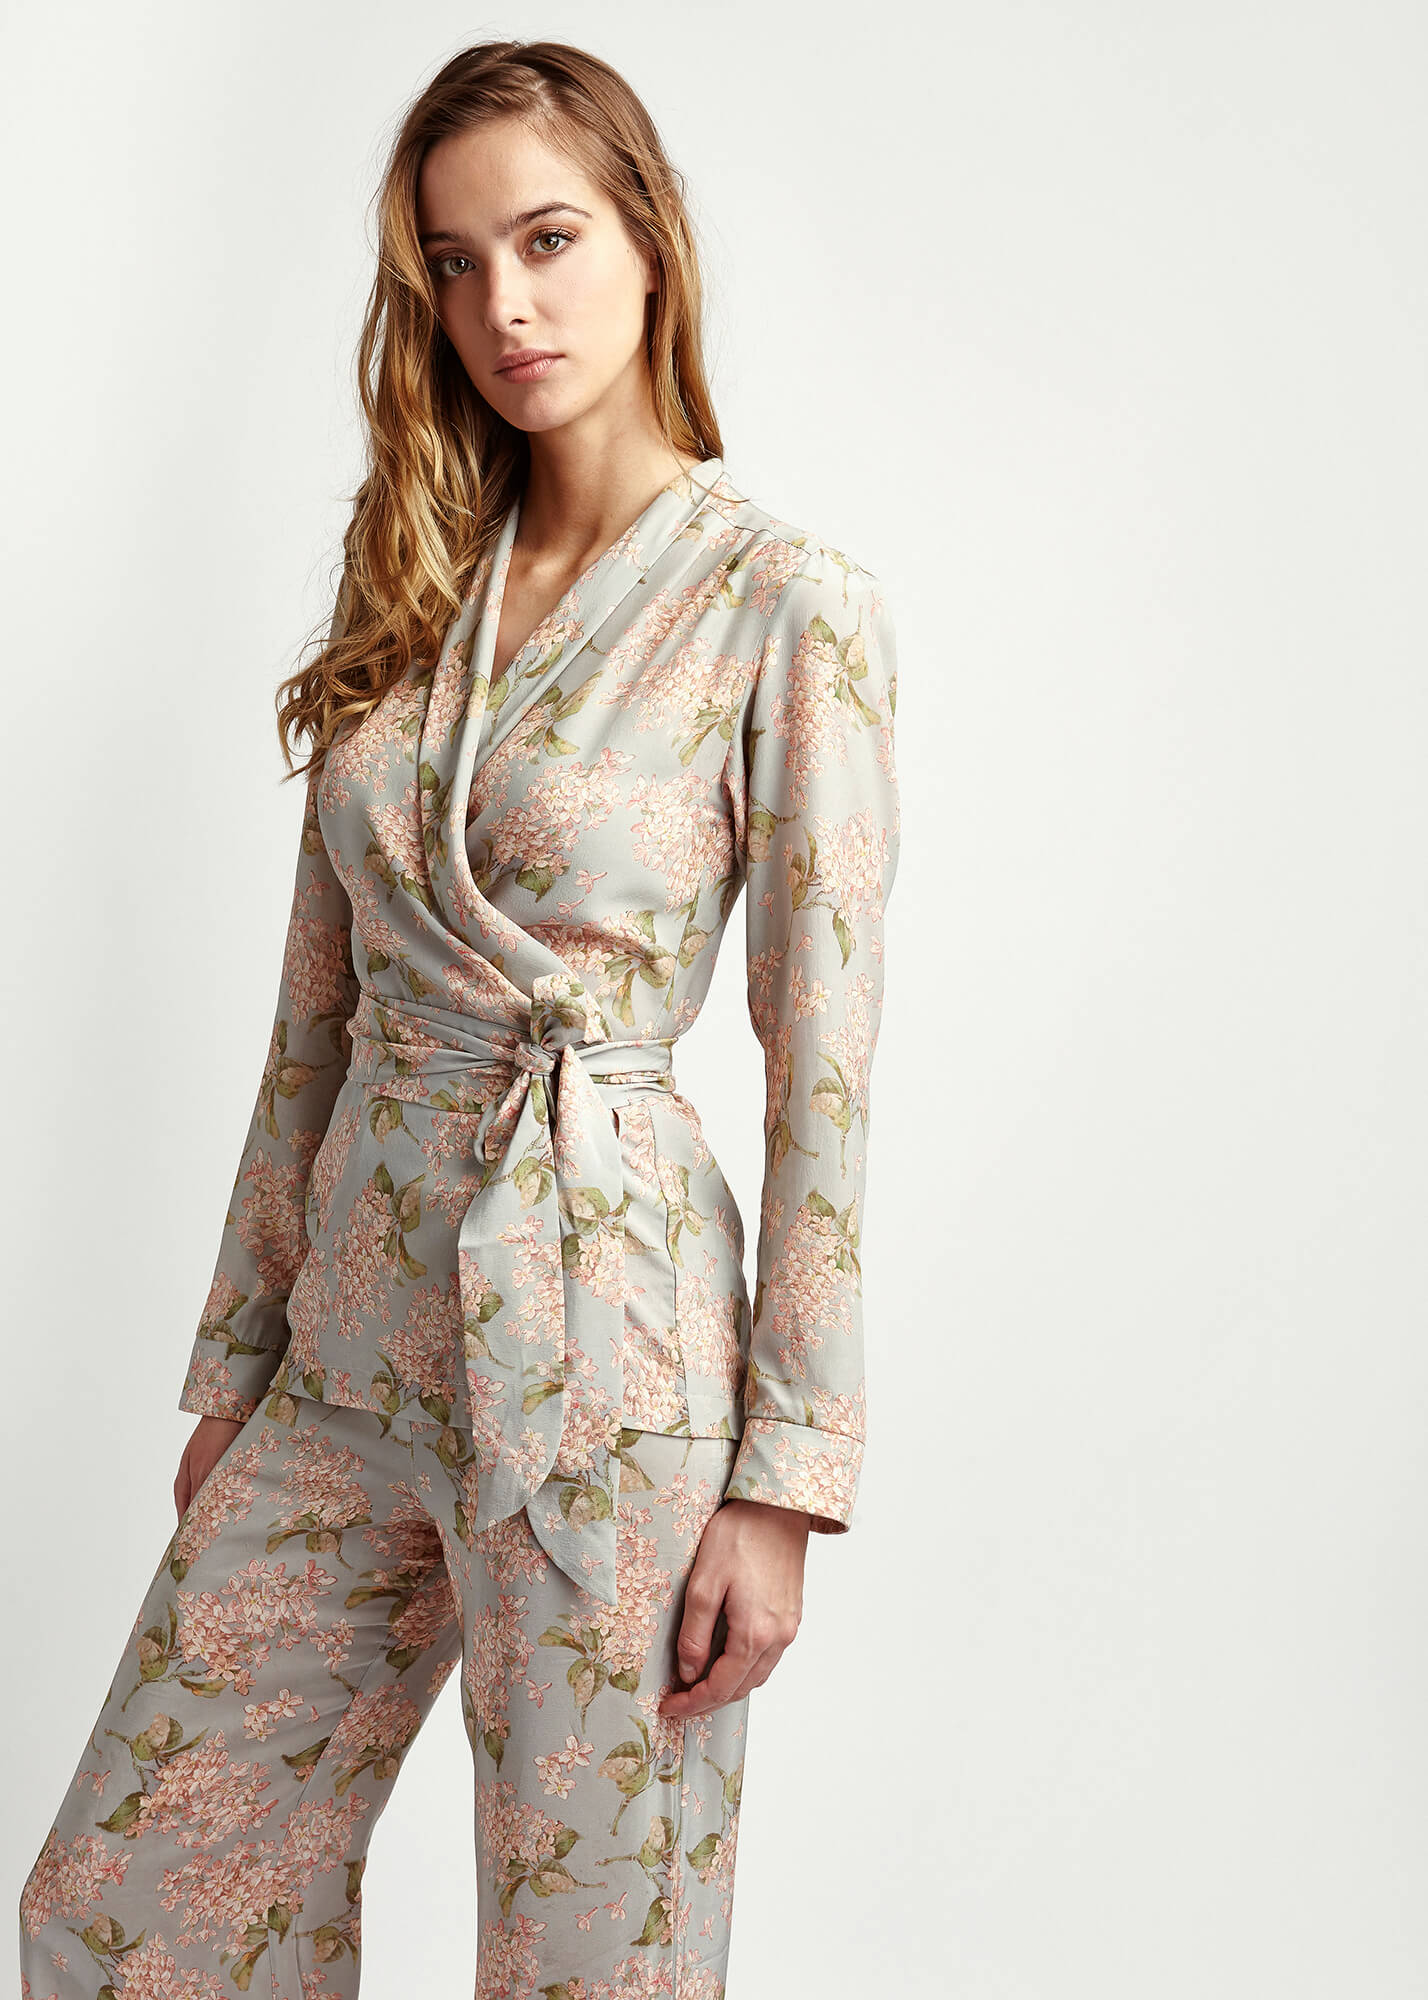 Roxy Florence Suit